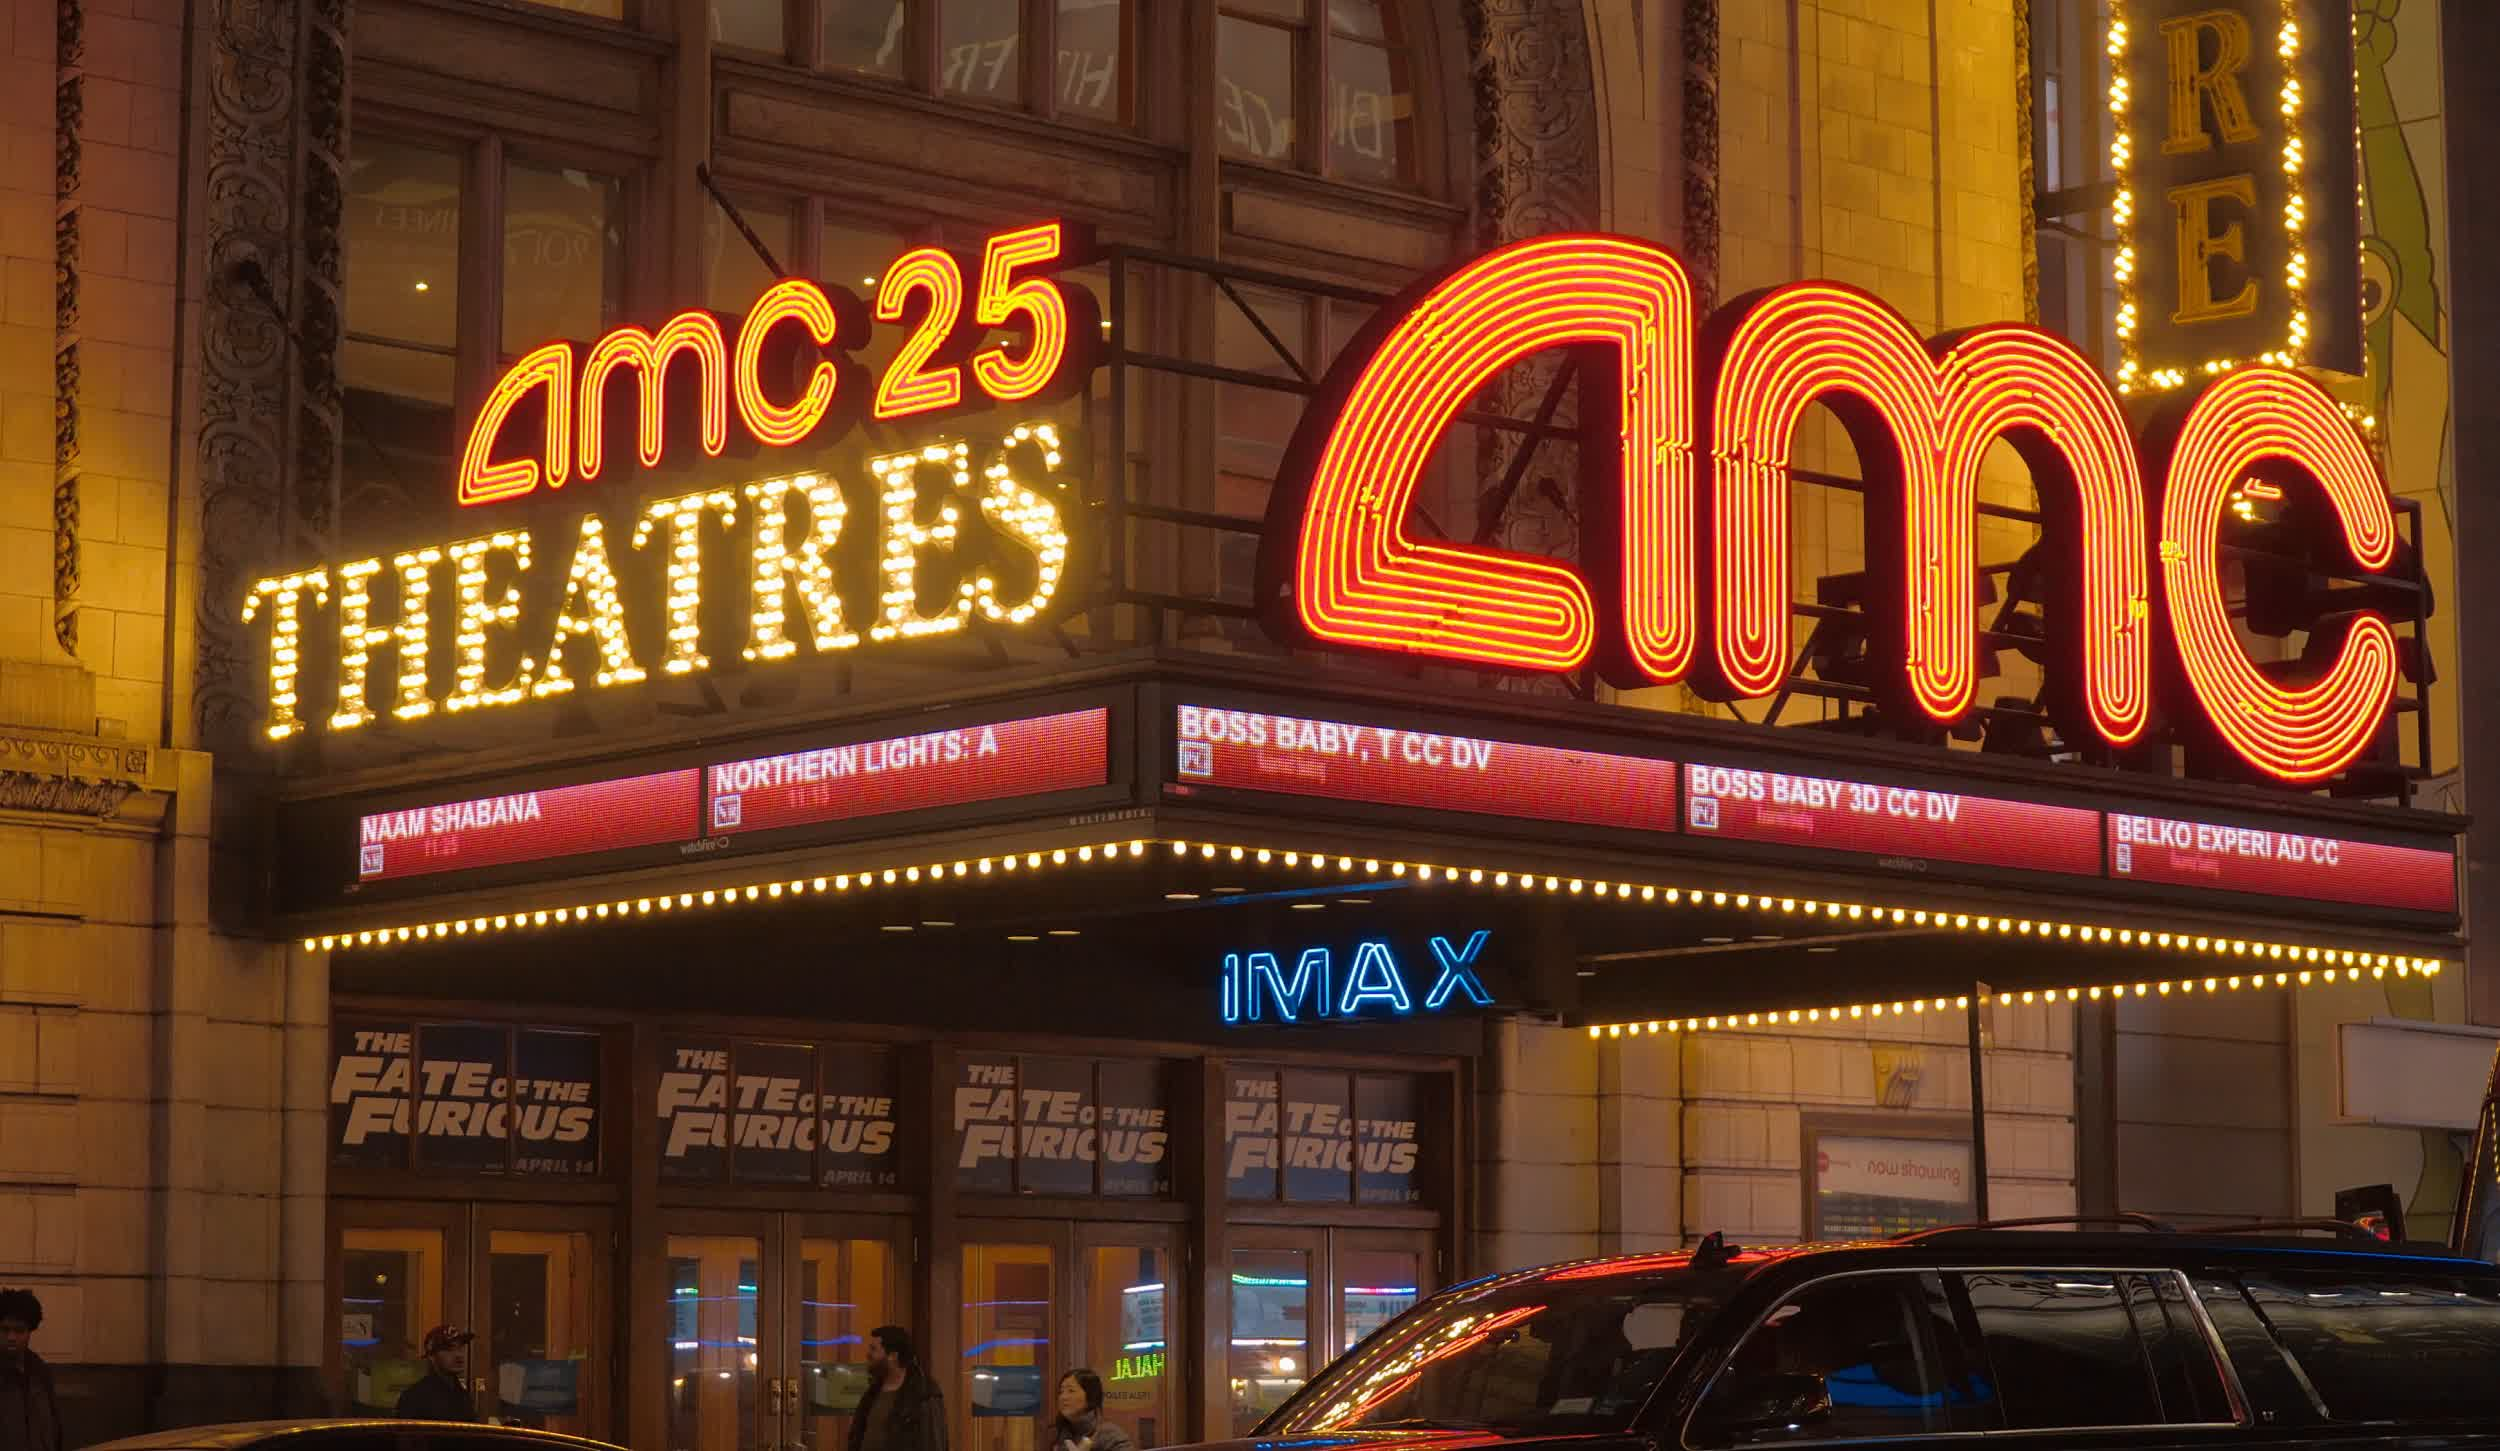 AMC theaters will accept cryptocurrencies other than Bitcoin